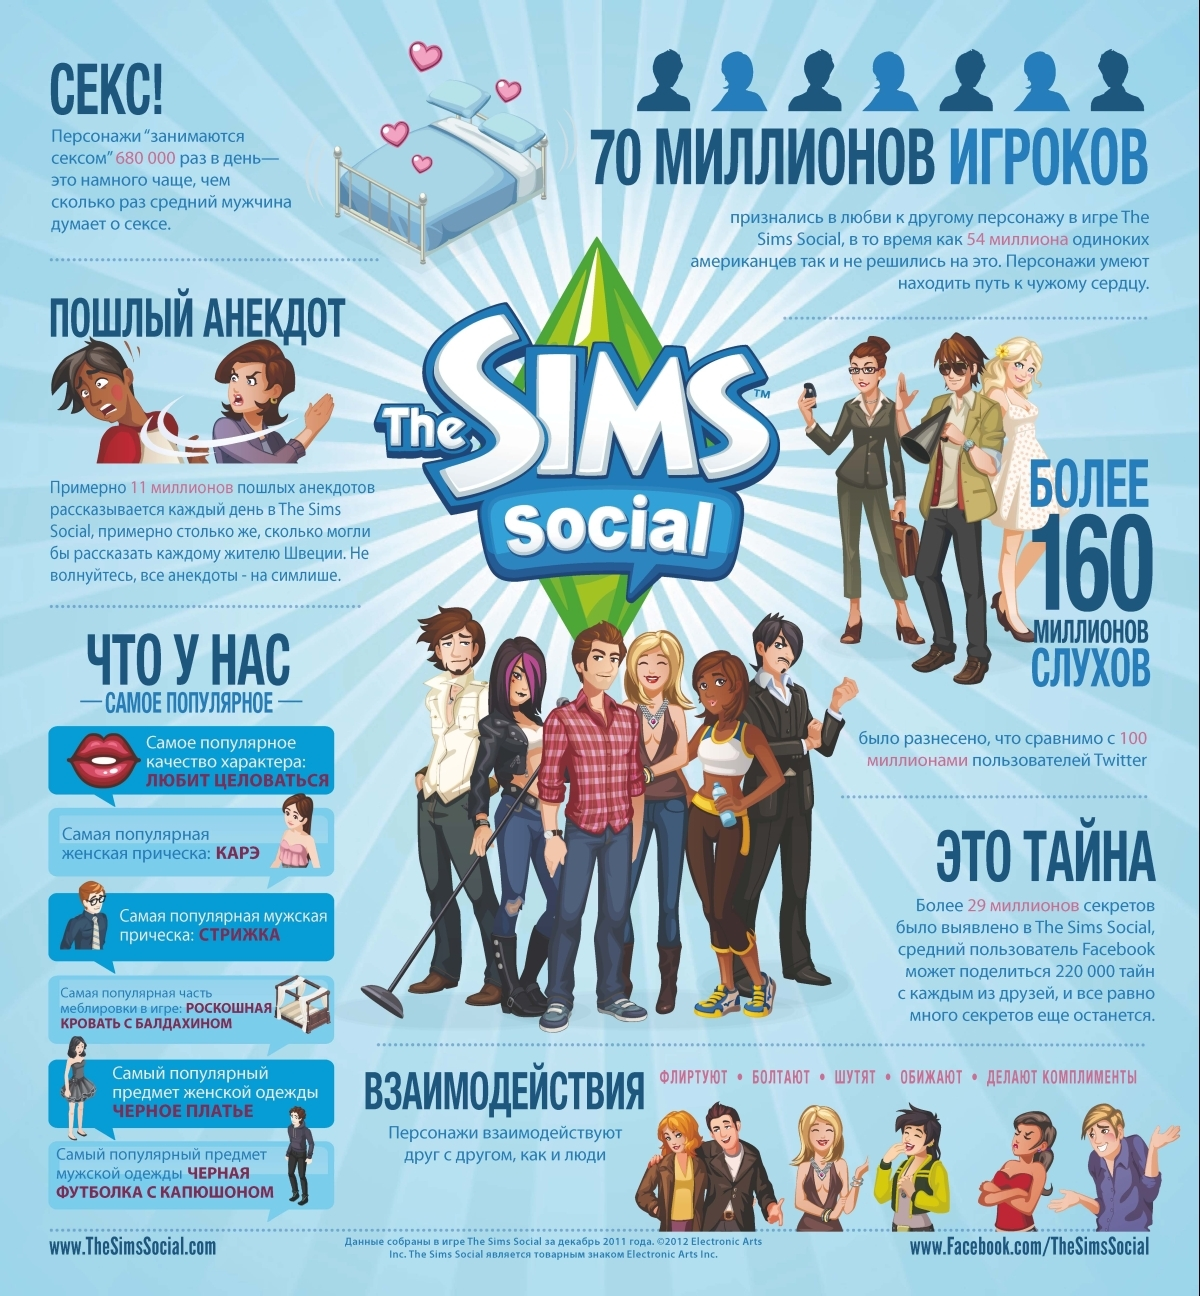 Sims have sex 680,000 times a day in The Sims Social.